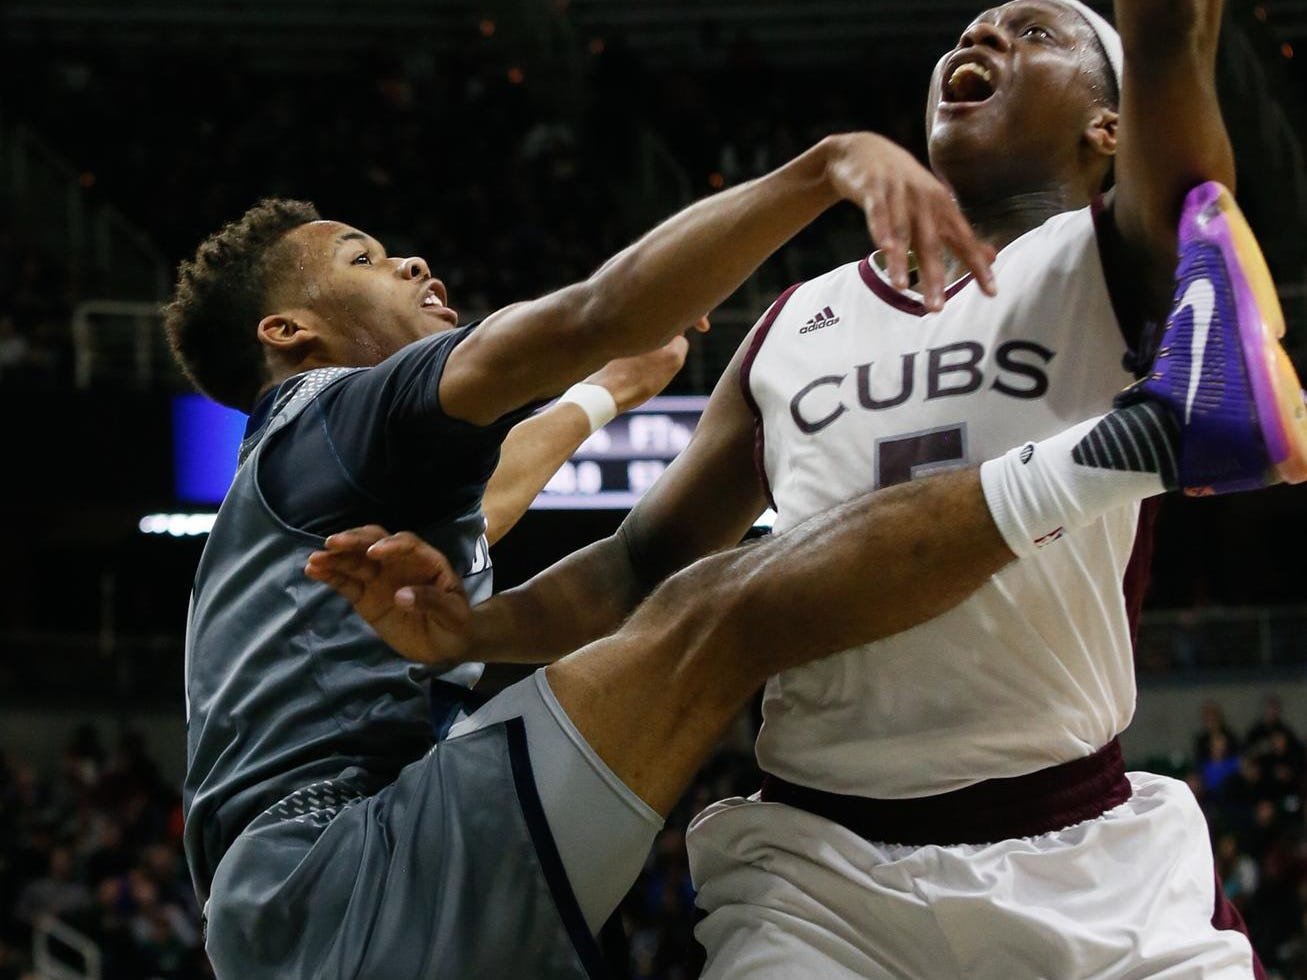 Winston signed with Michigan State, won the 2016 Mr. Basketball award and graduated from U-D magna cum laude with a 3.5 grade-point average.